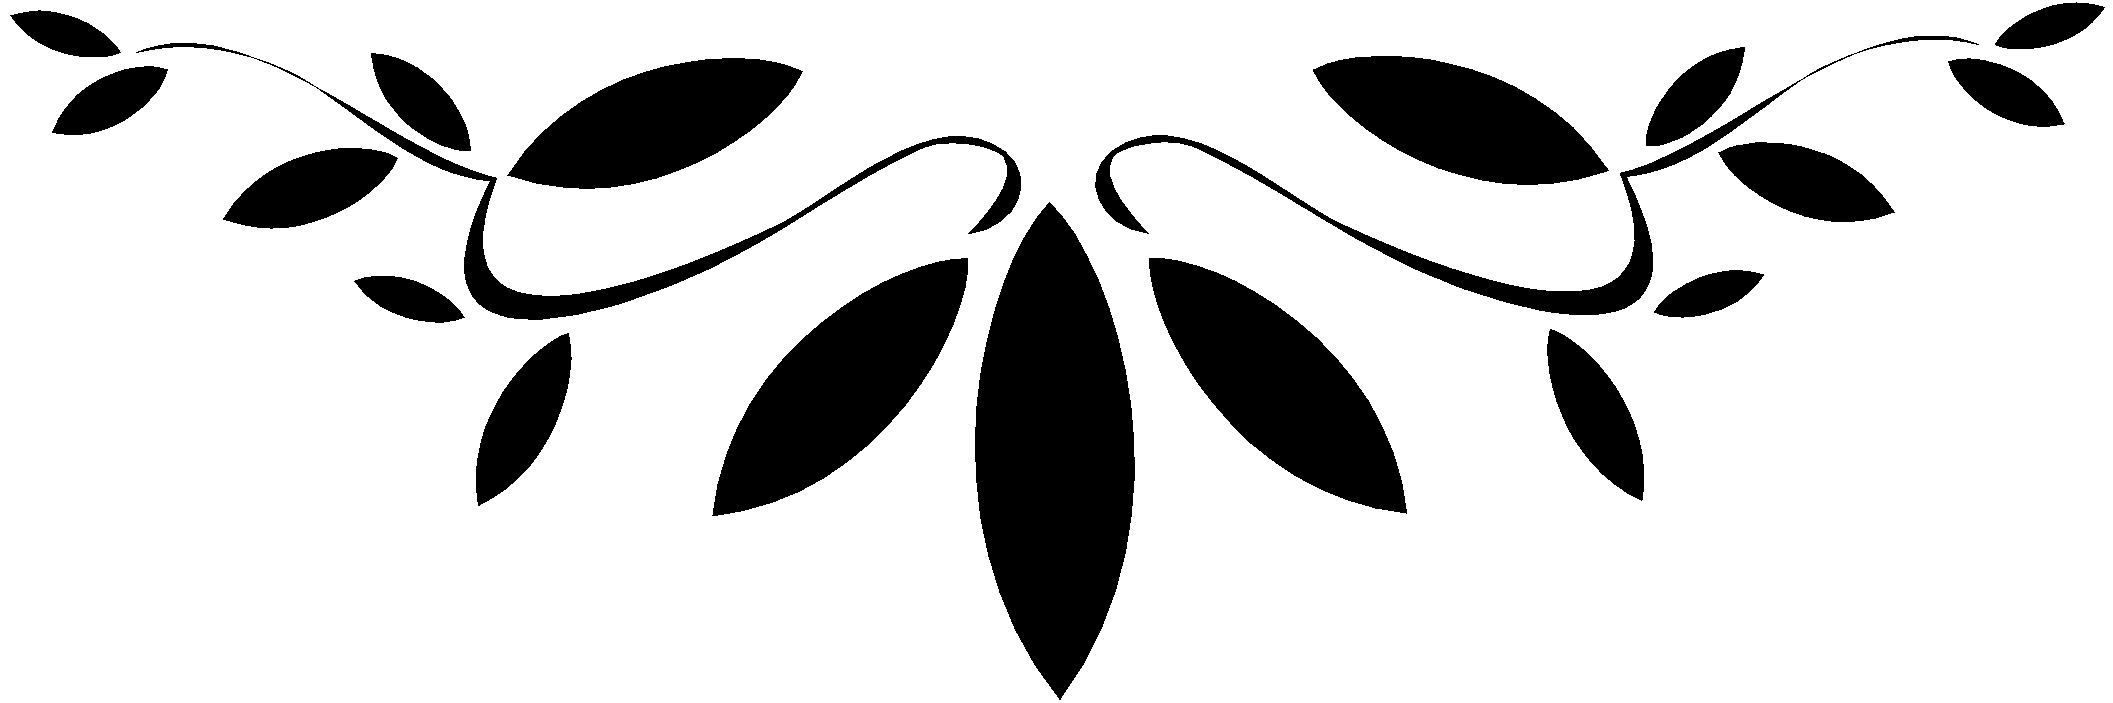 Pictures Of Simple Leaf Design Black And White Kidskunstinfo